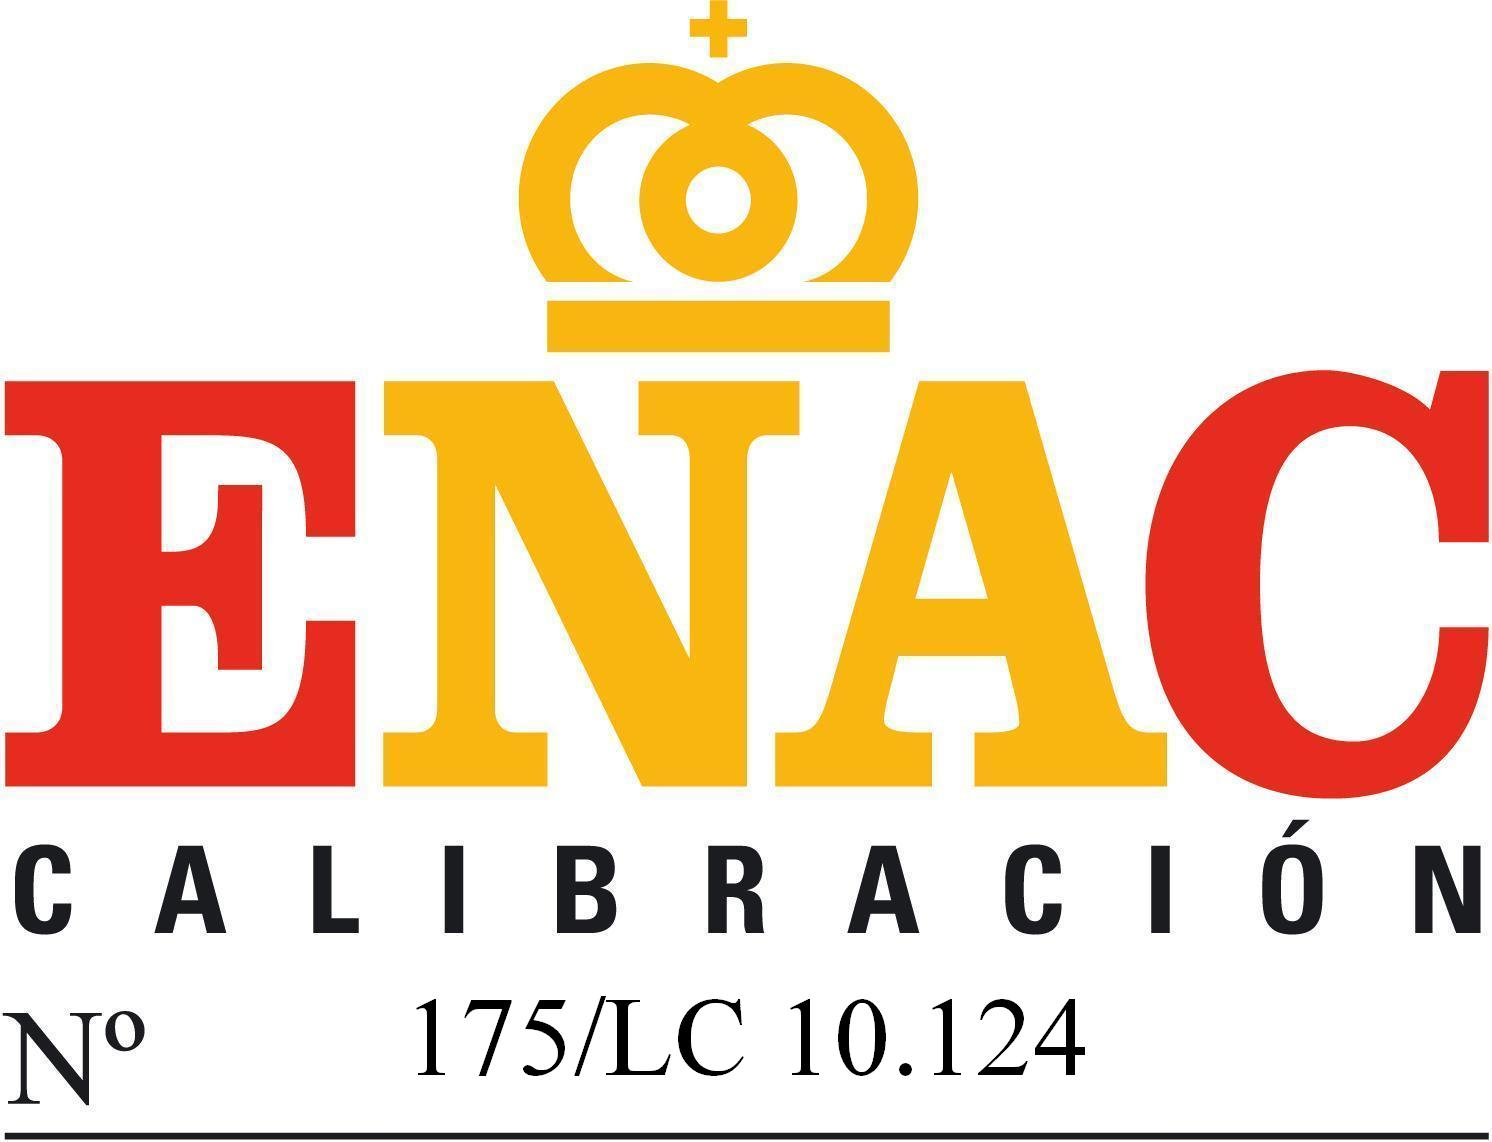 ENAC accreditation of the Calibration Laboratory 10/2007, with the registration number 175/LC10.124